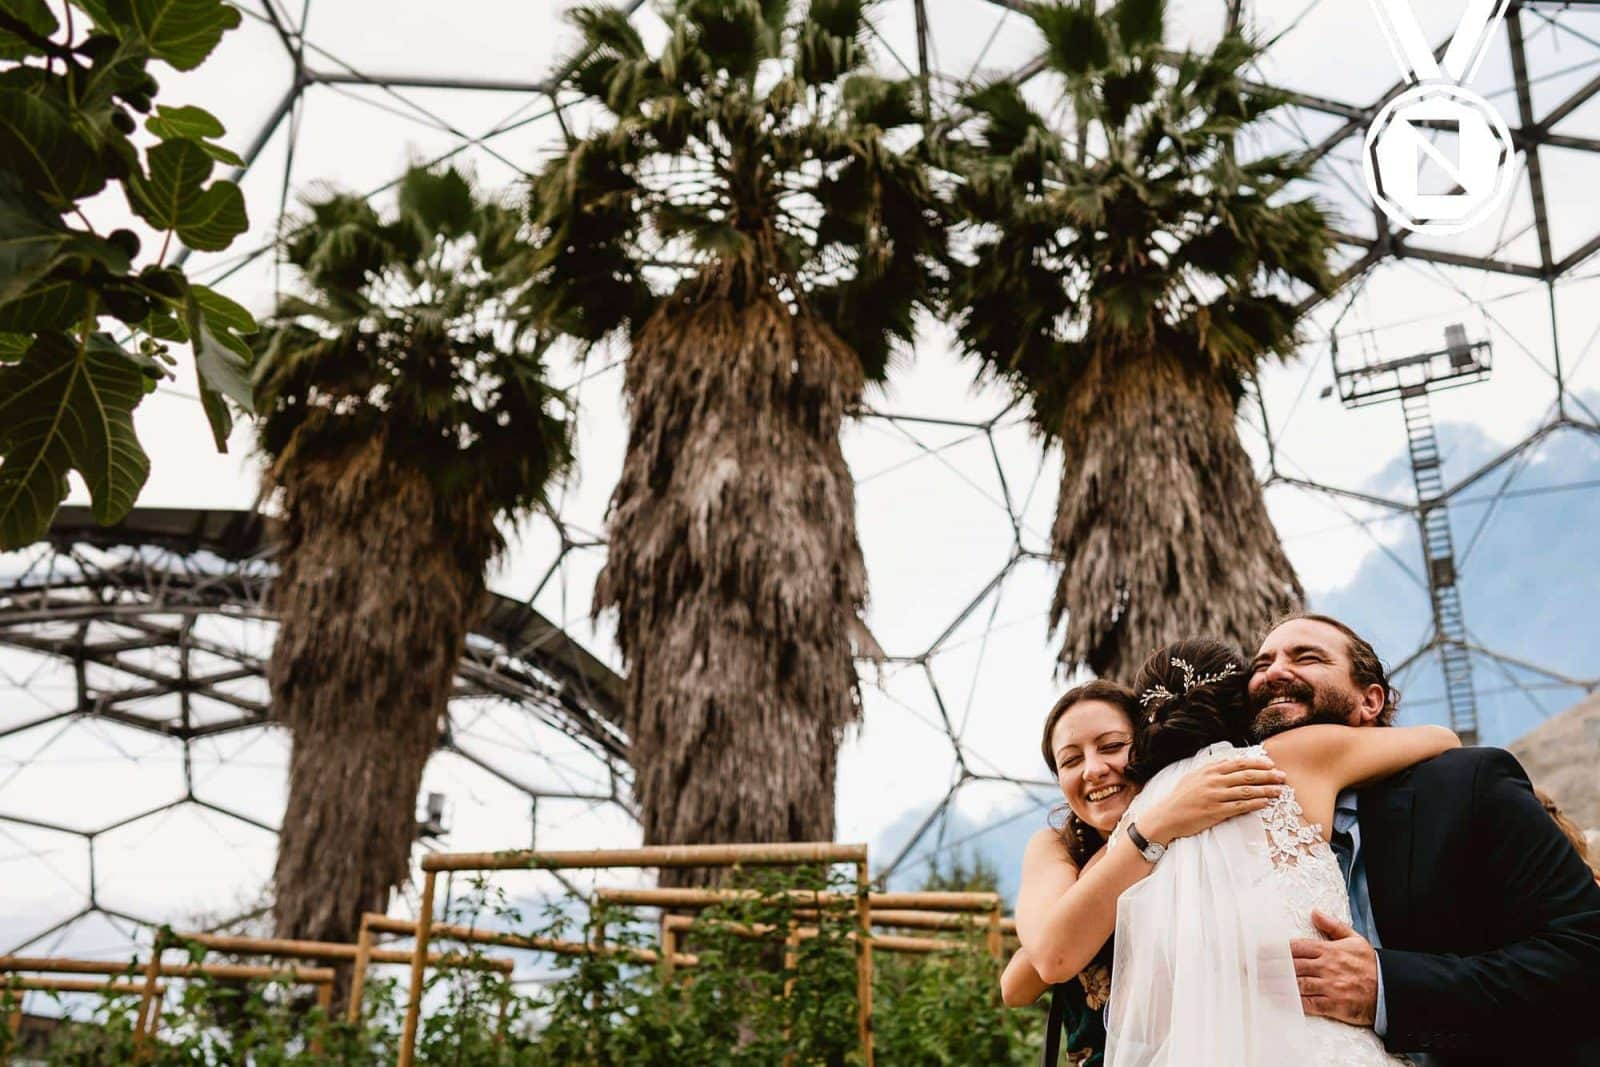 A wedding image at the Eden Project of a bride and two guests embracing infront of some huge trees.